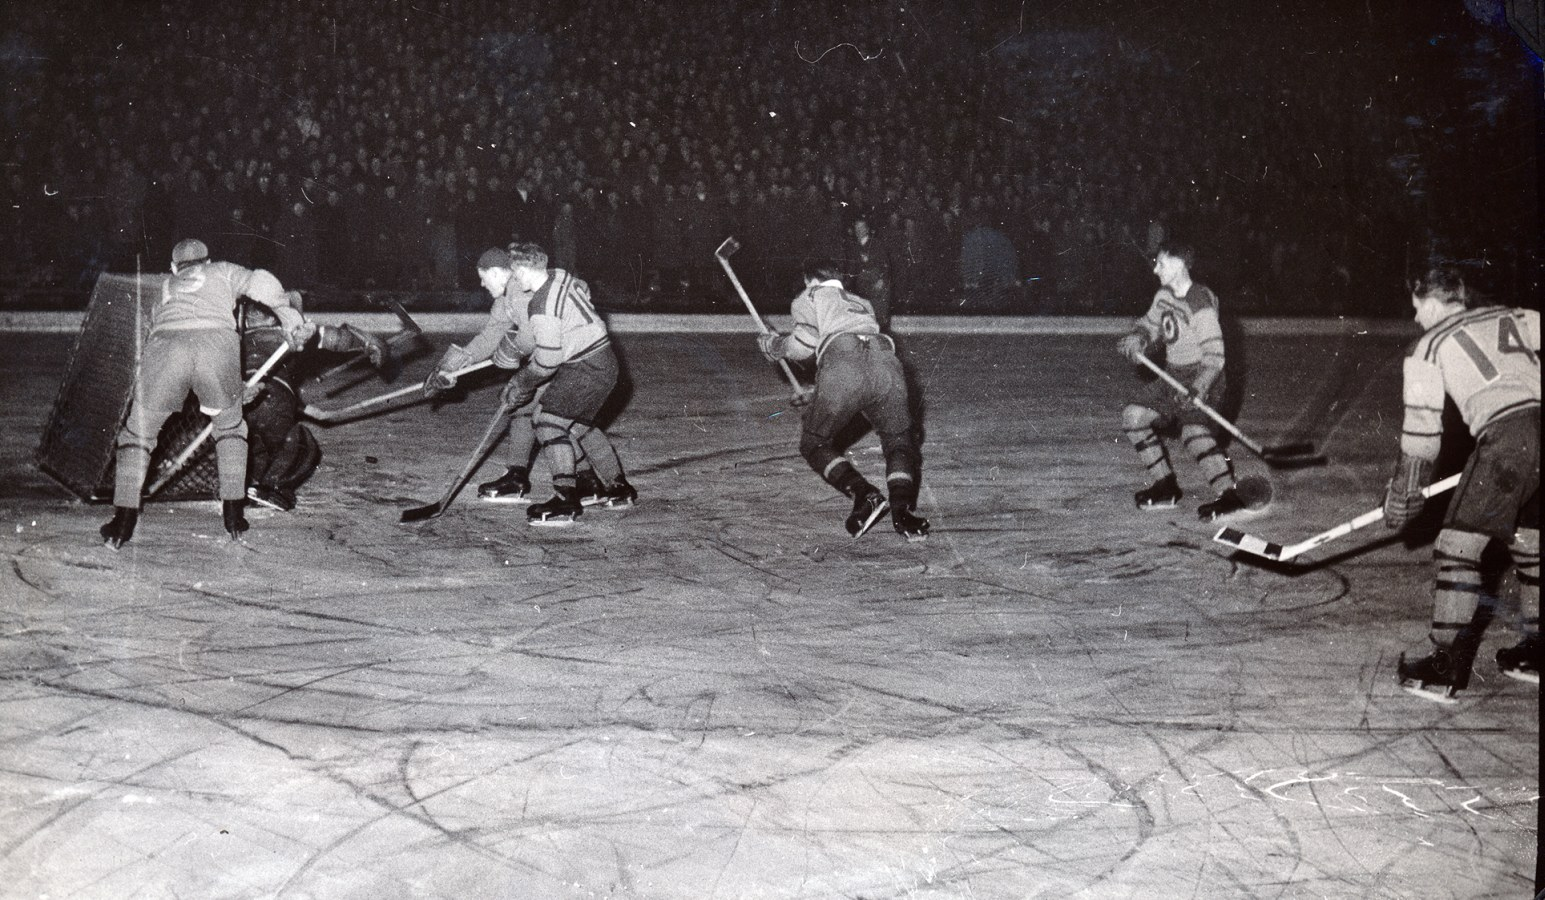 Photo: RCAF Flyers vs Sweden in post Olympic Exhibition Game at Stockholm